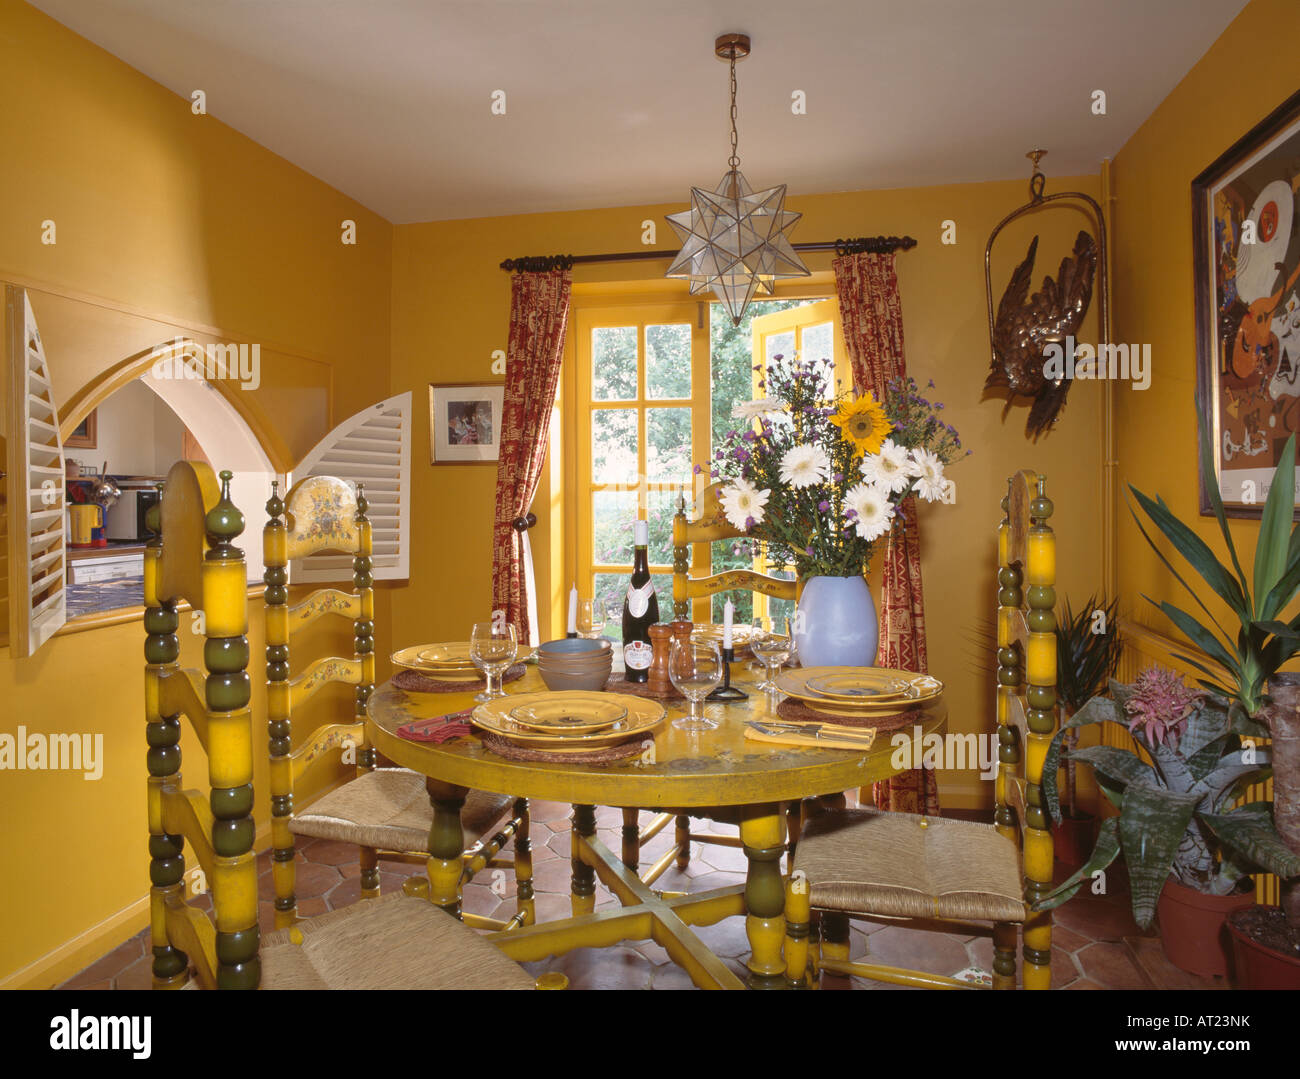 Painted Yellow Chairs And Table In Bright Dining Room With Serving Hatch The Wall